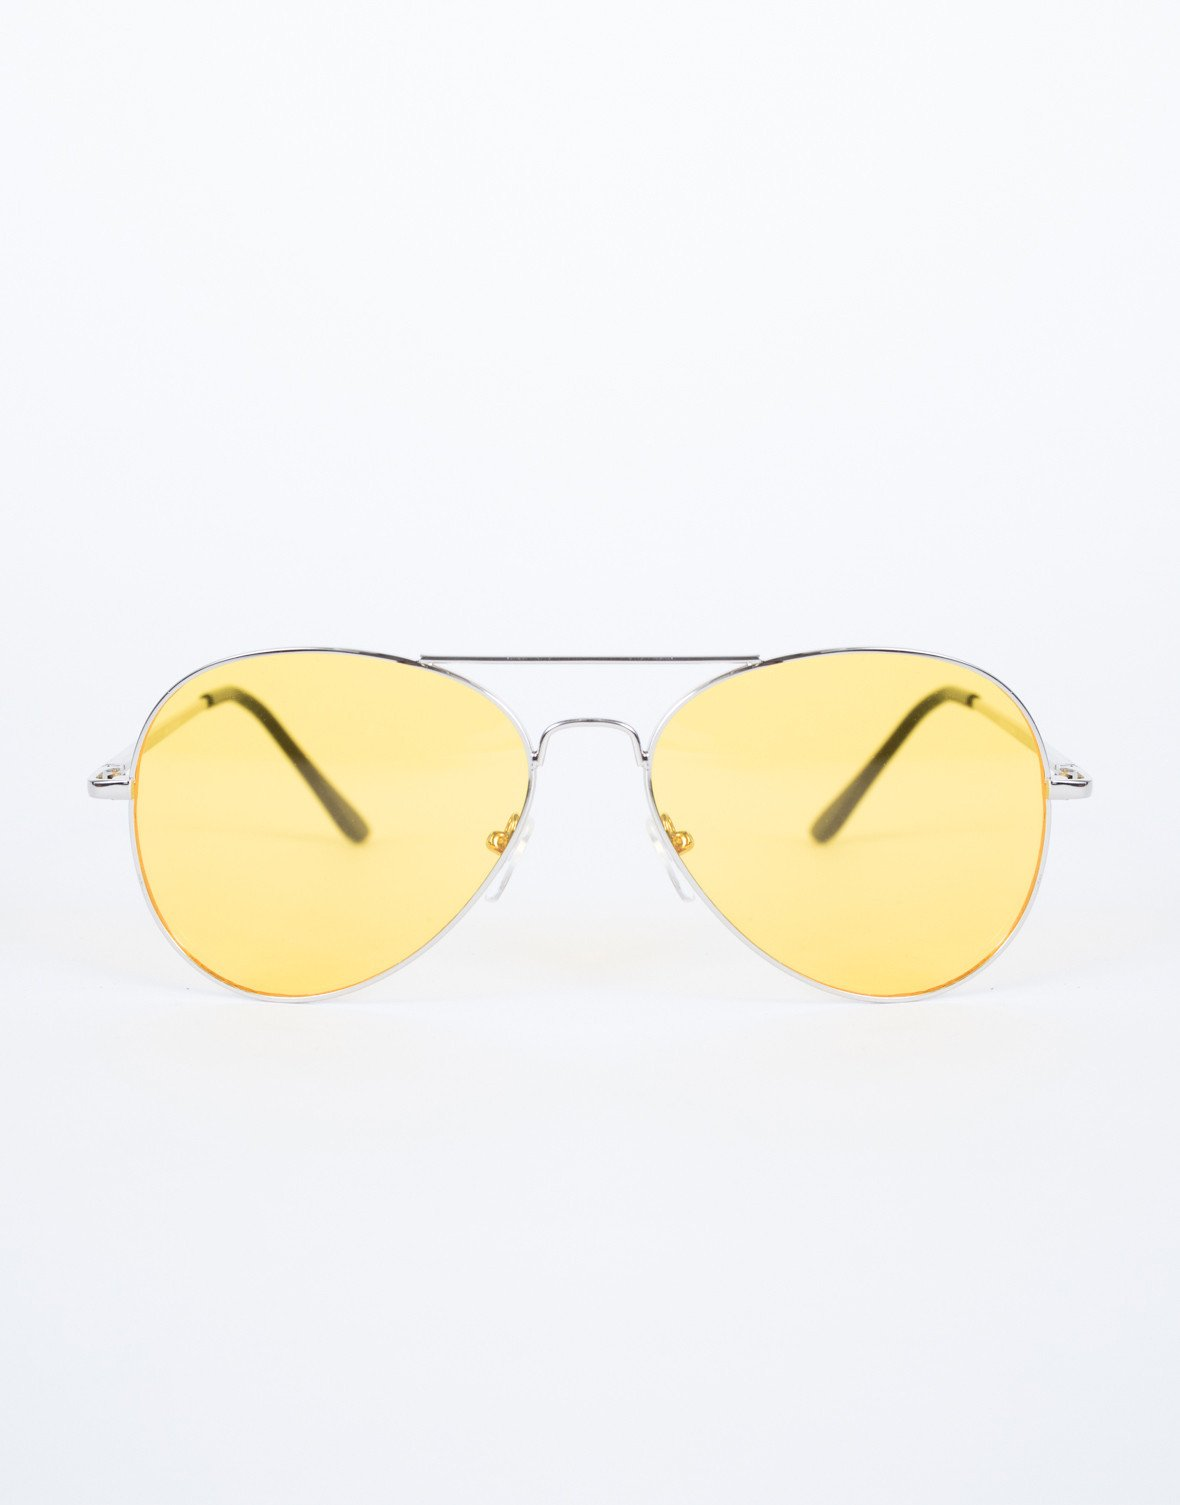 Yellow Warm Days Sunnies - Front View